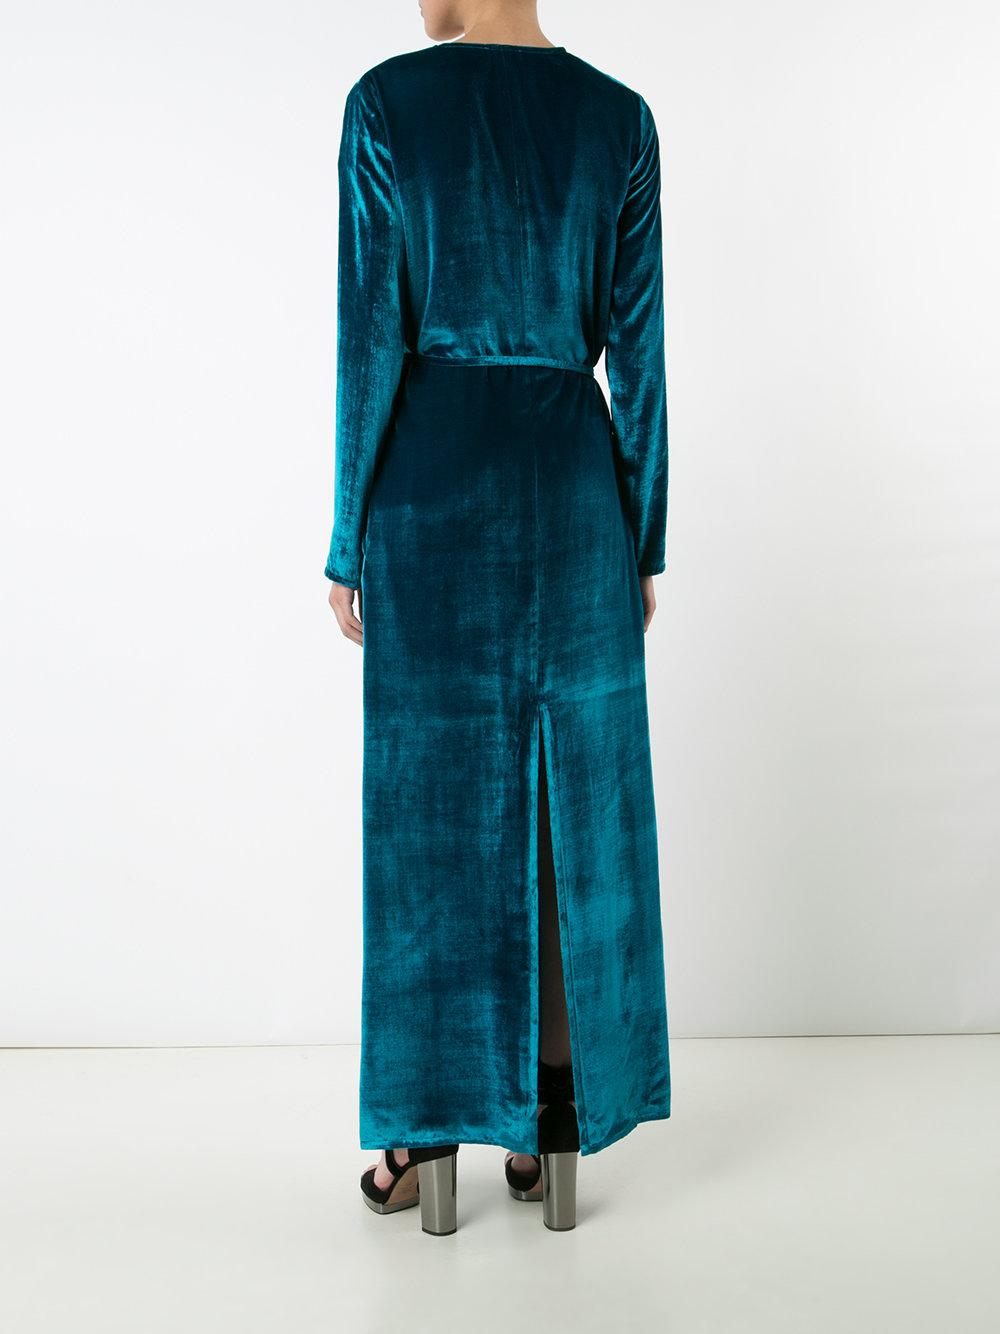 Attico Turquoise Velvet Robe Dress In Blue Lyst